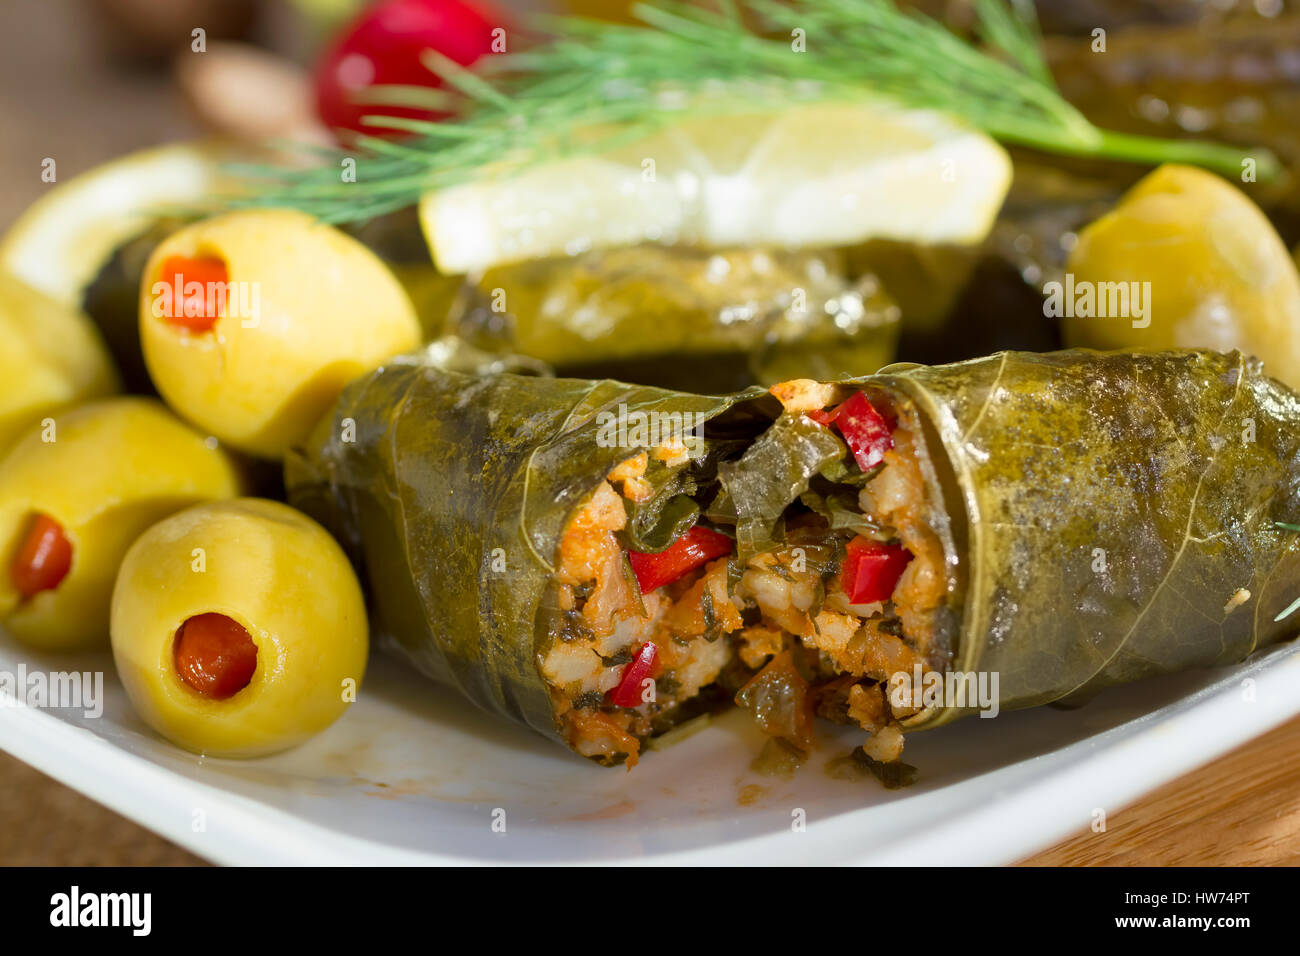 Mediterranean Meal Plate Grape Leaves Stuffed With Rice Stock Photo Alamy